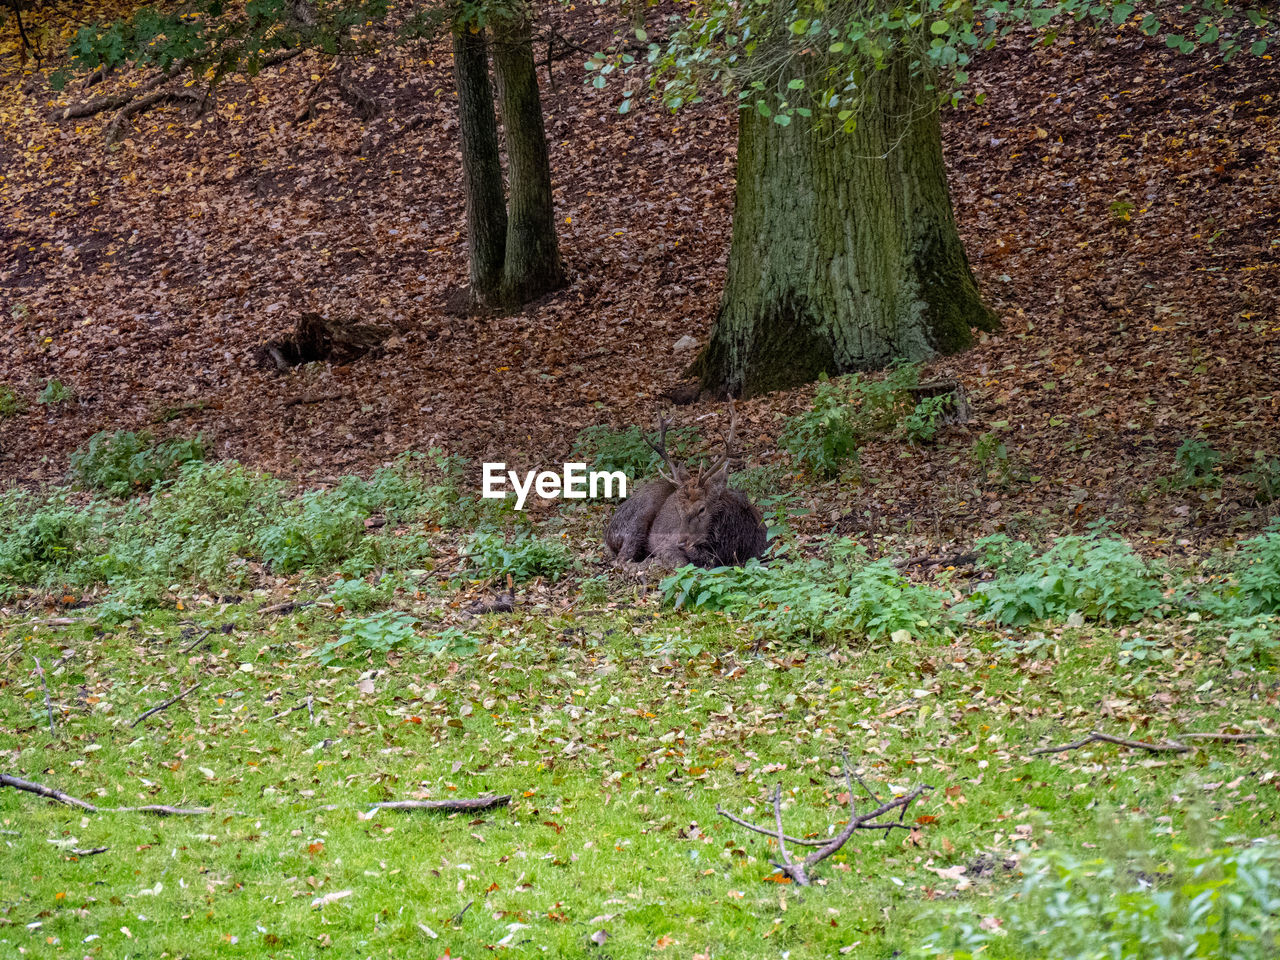 animal themes, animal, one animal, animal wildlife, mammal, animals in the wild, plant, vertebrate, land, tree, nature, no people, day, green color, field, rodent, grass, forest, outdoors, high angle view